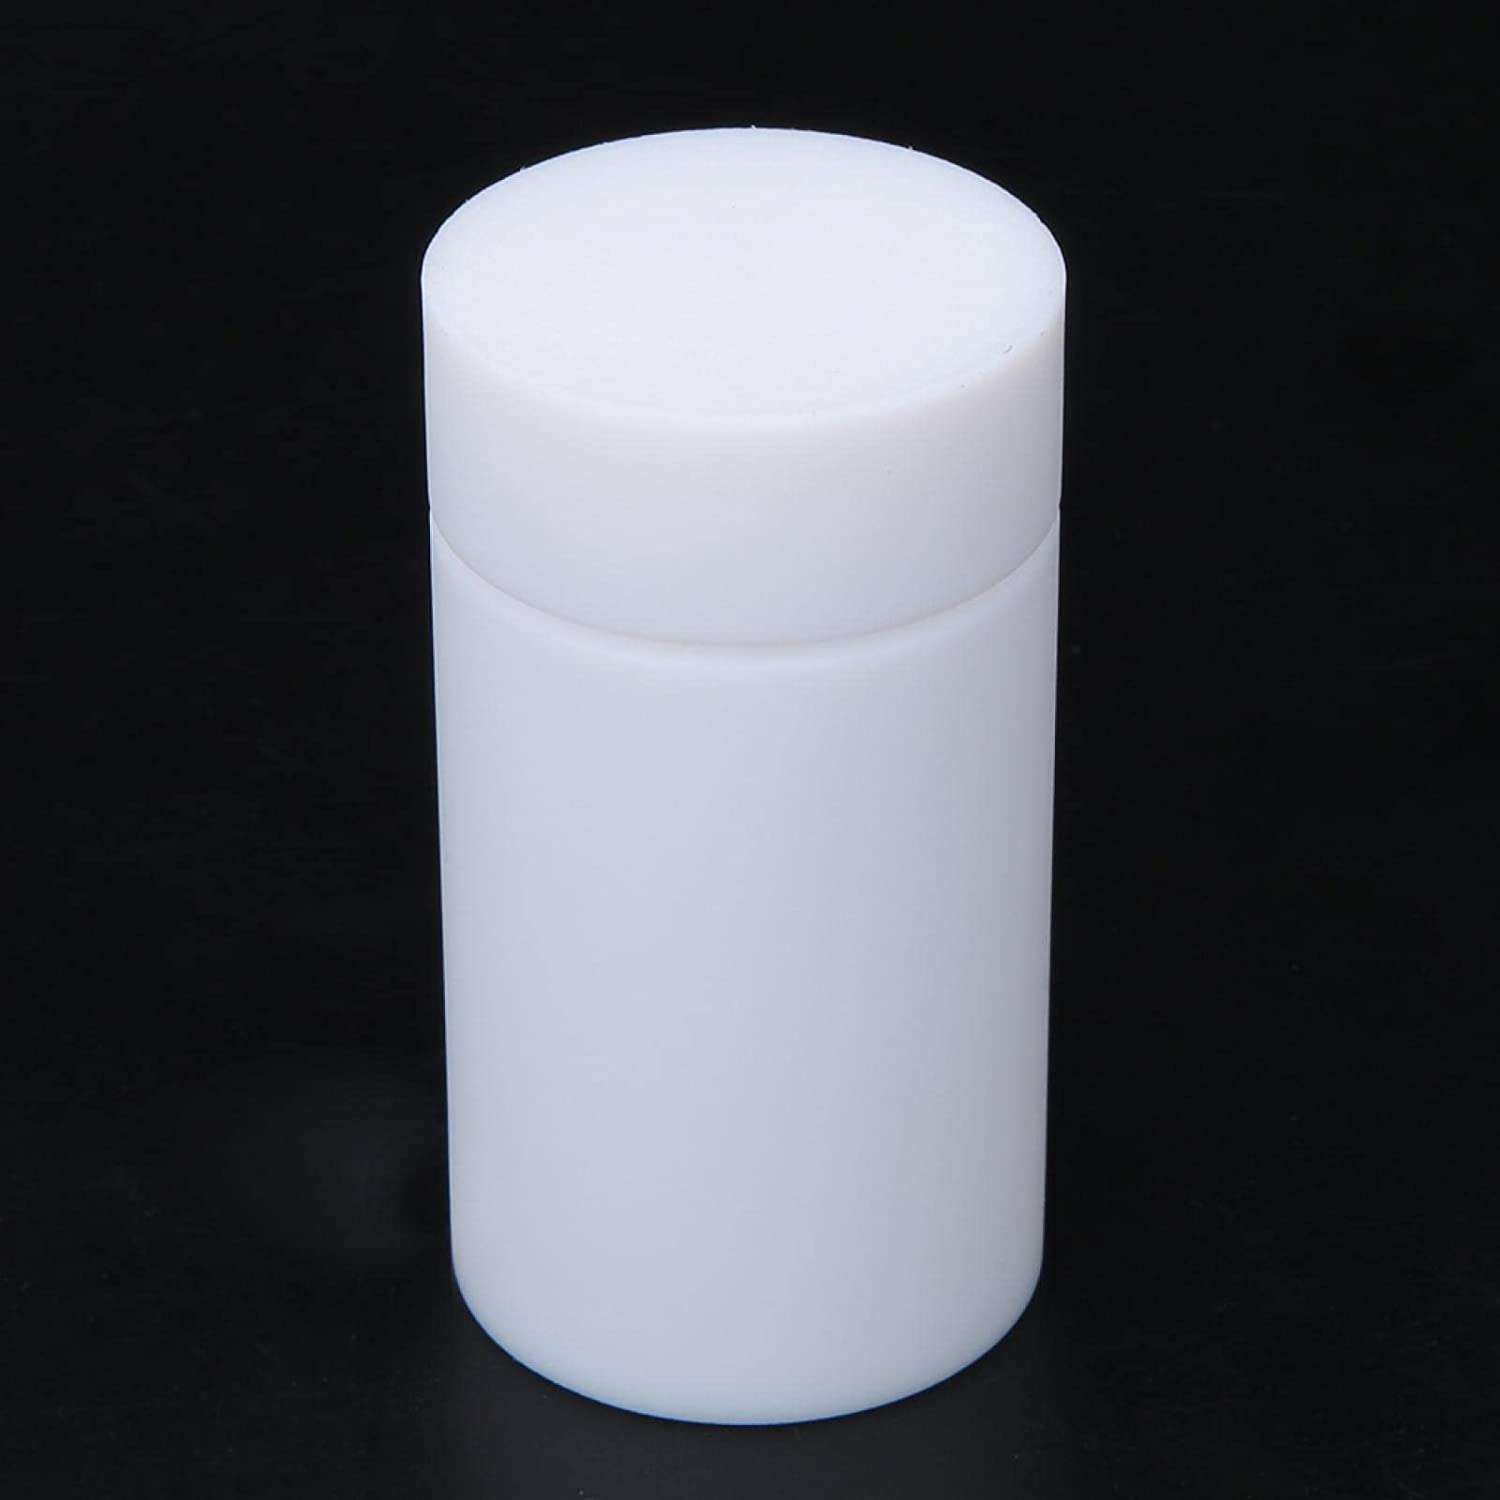 25ml Hydrothermal Reactor PTFE Environm for NEW before selling ☆ Resistance Liner Max 60% OFF